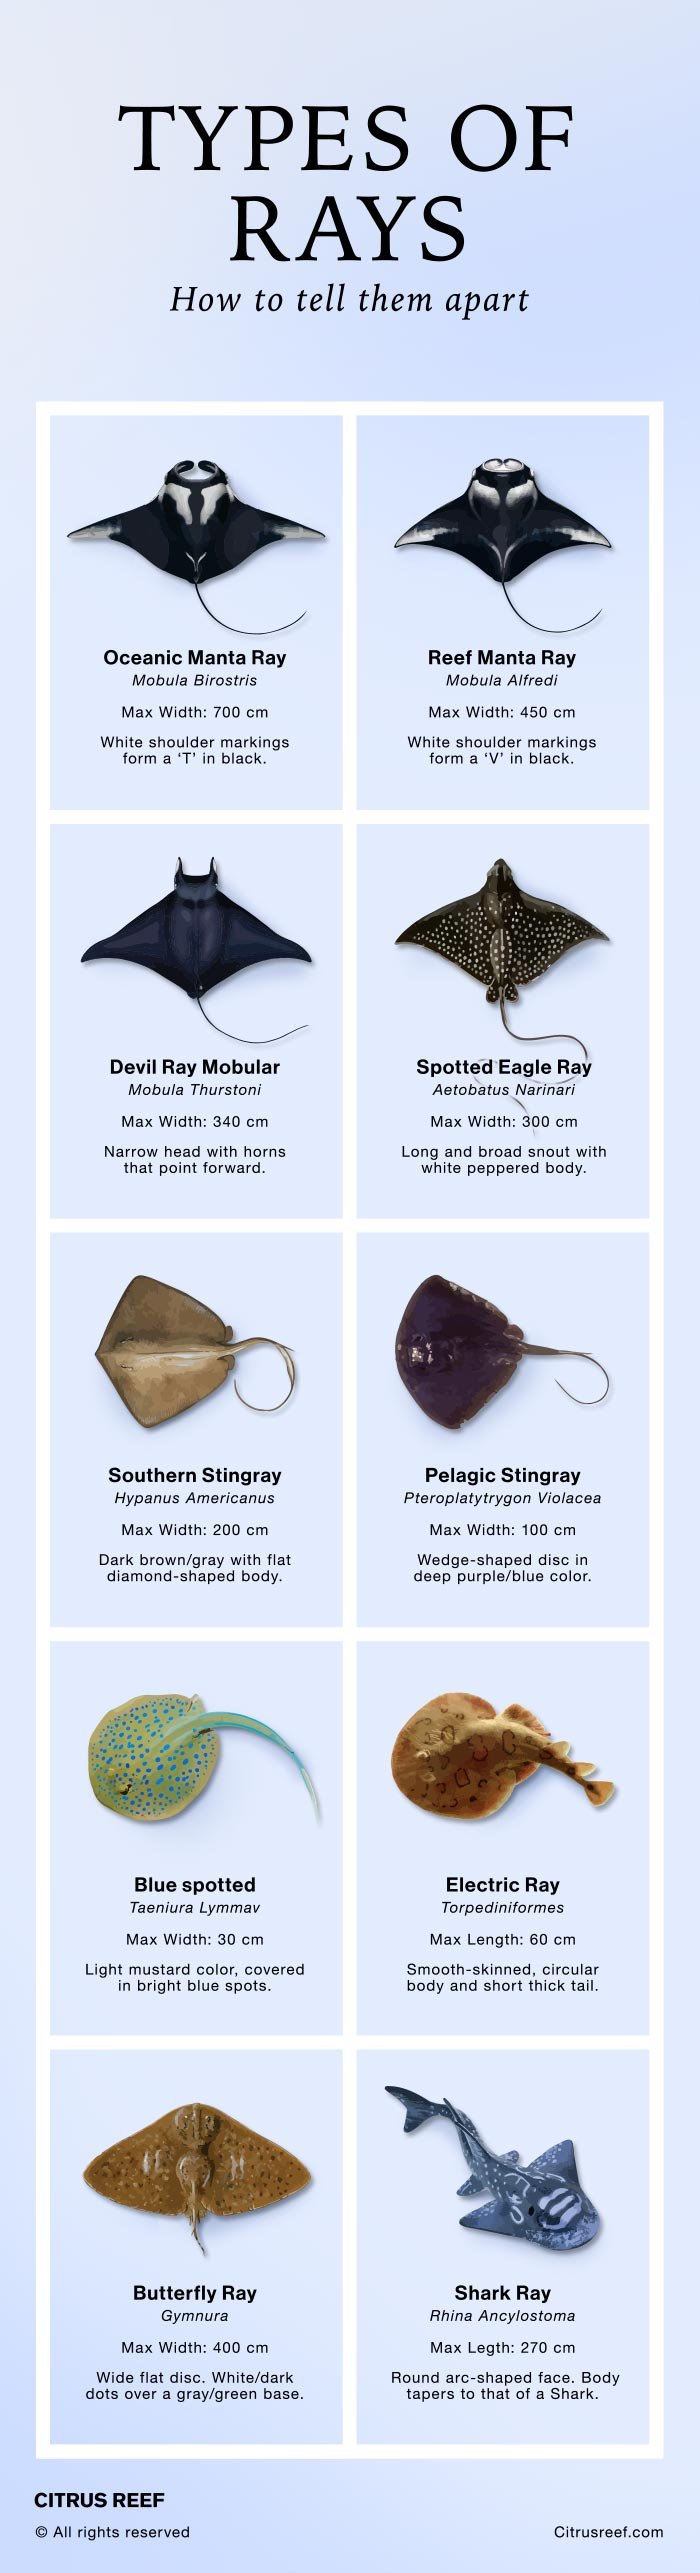 Types of Rays – Different Species